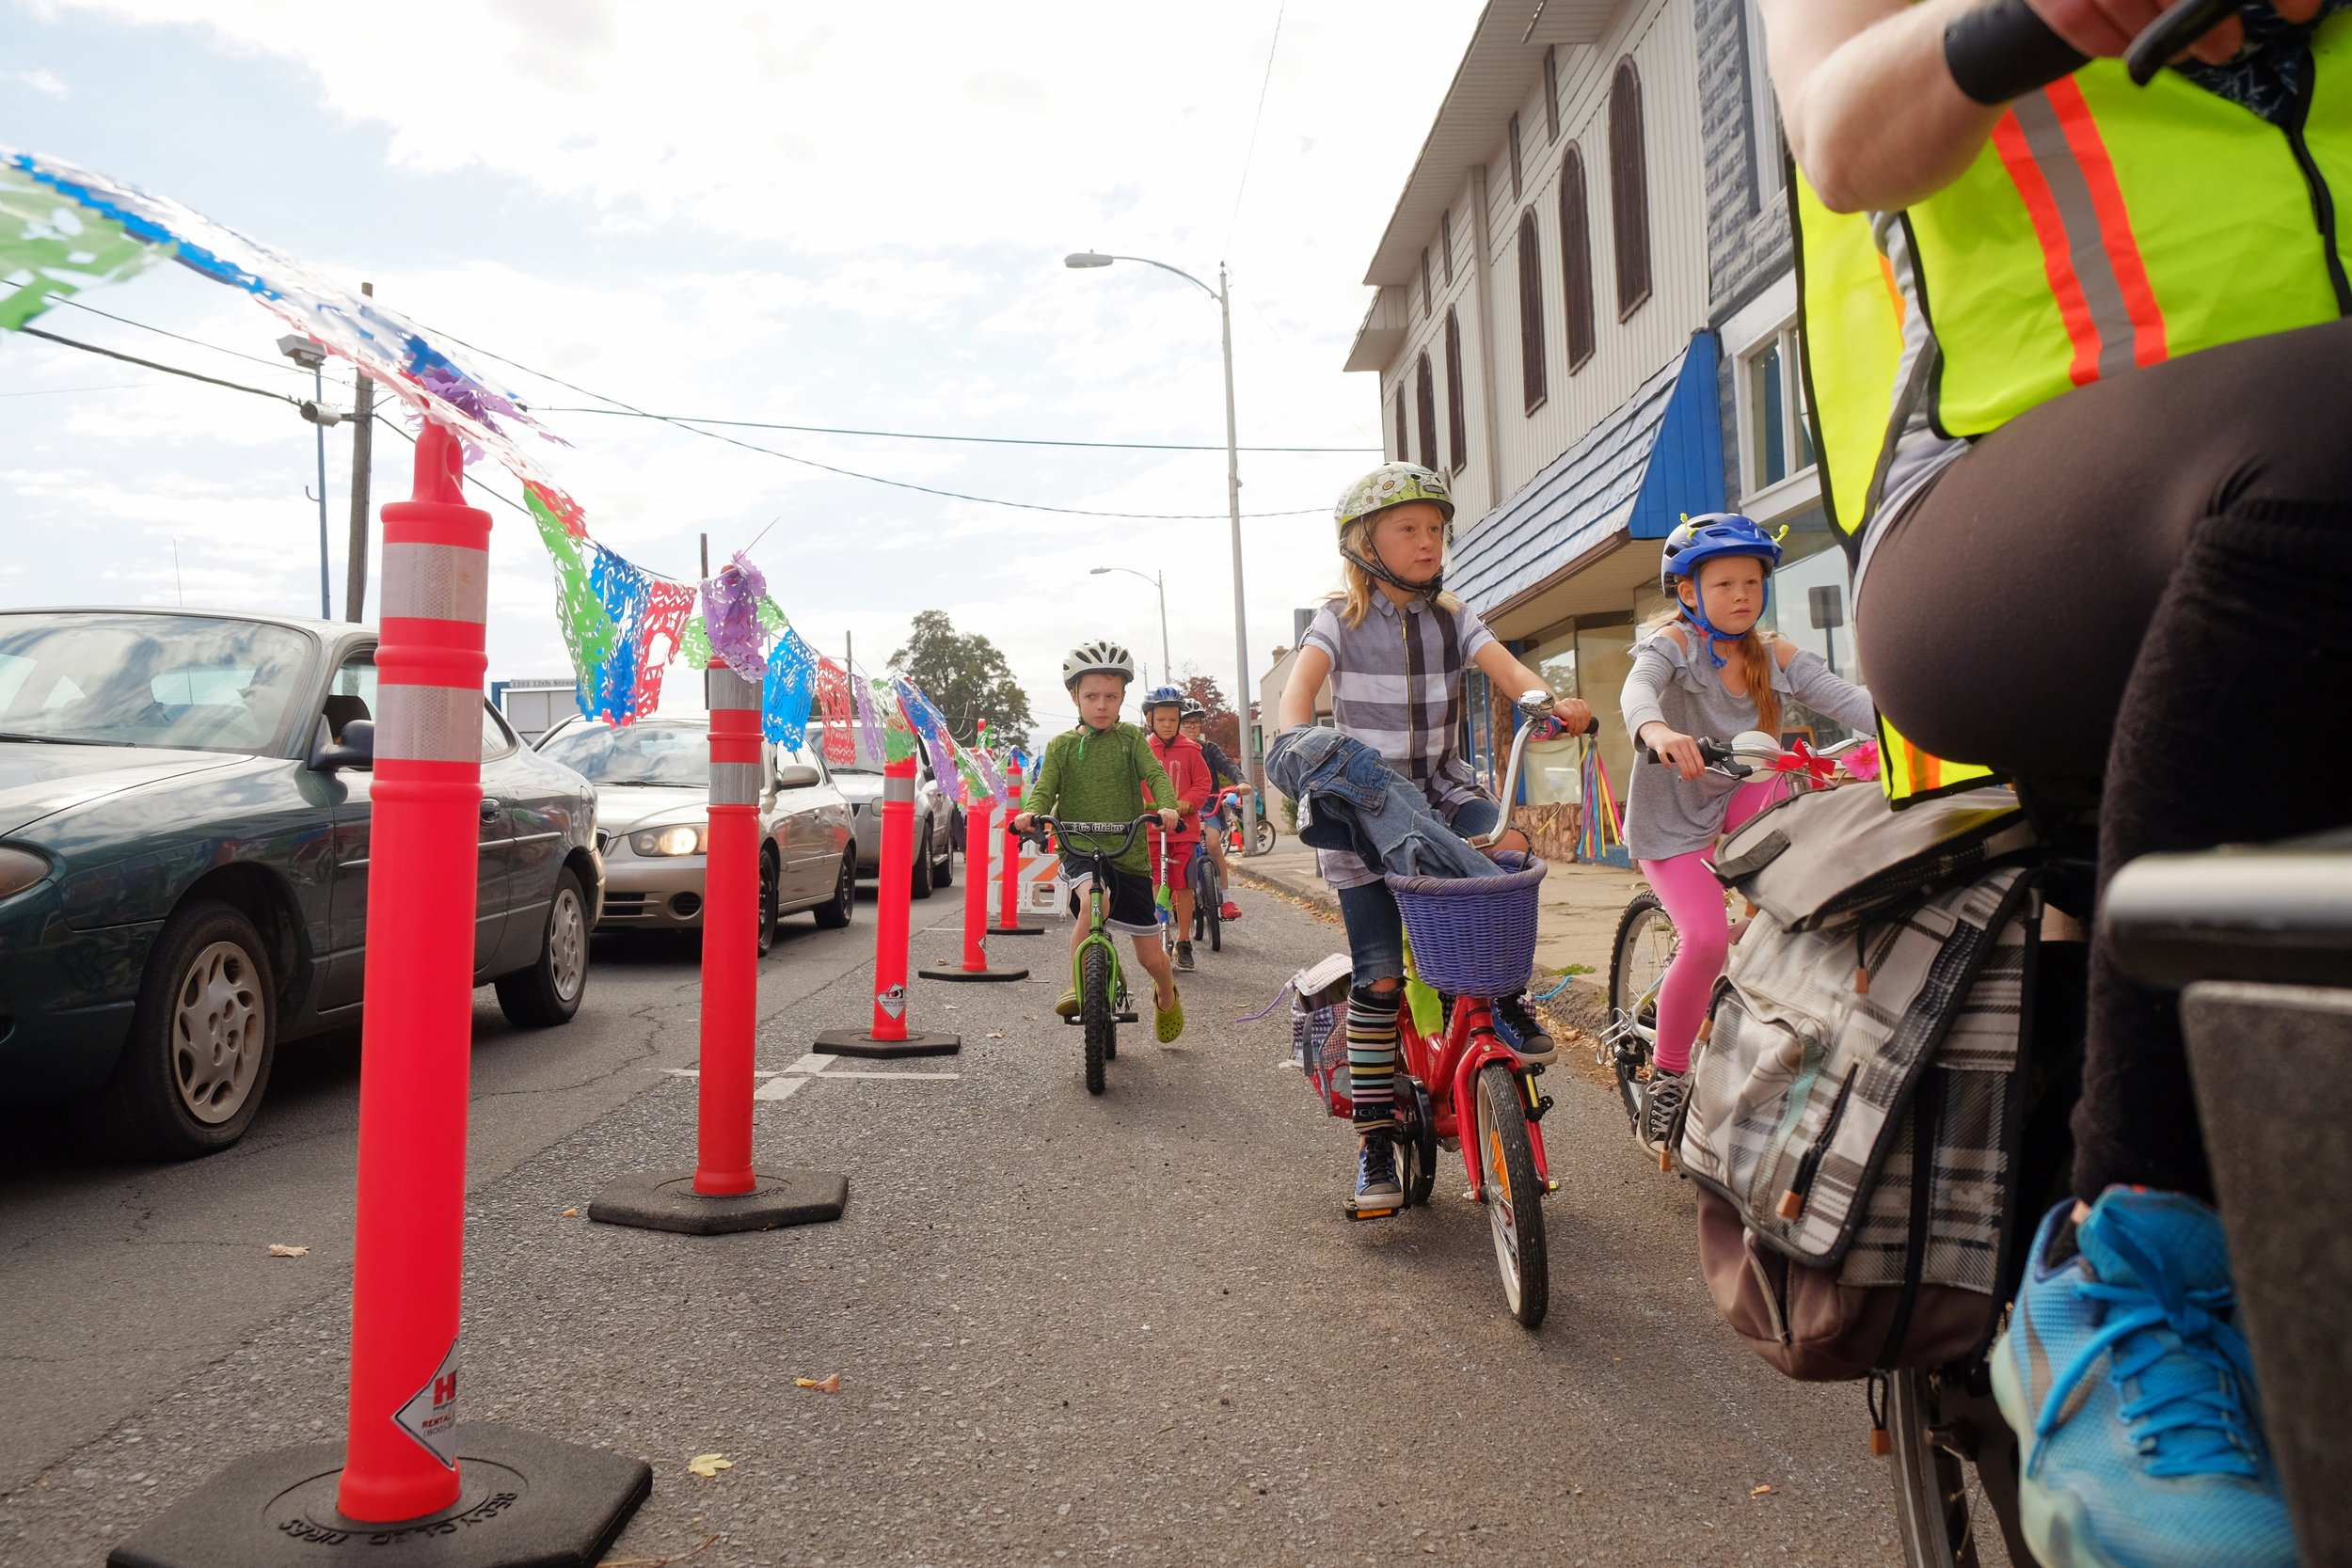 Leading the Kids' Bike Parade for Hood River's first open streets event, Streets Alive.